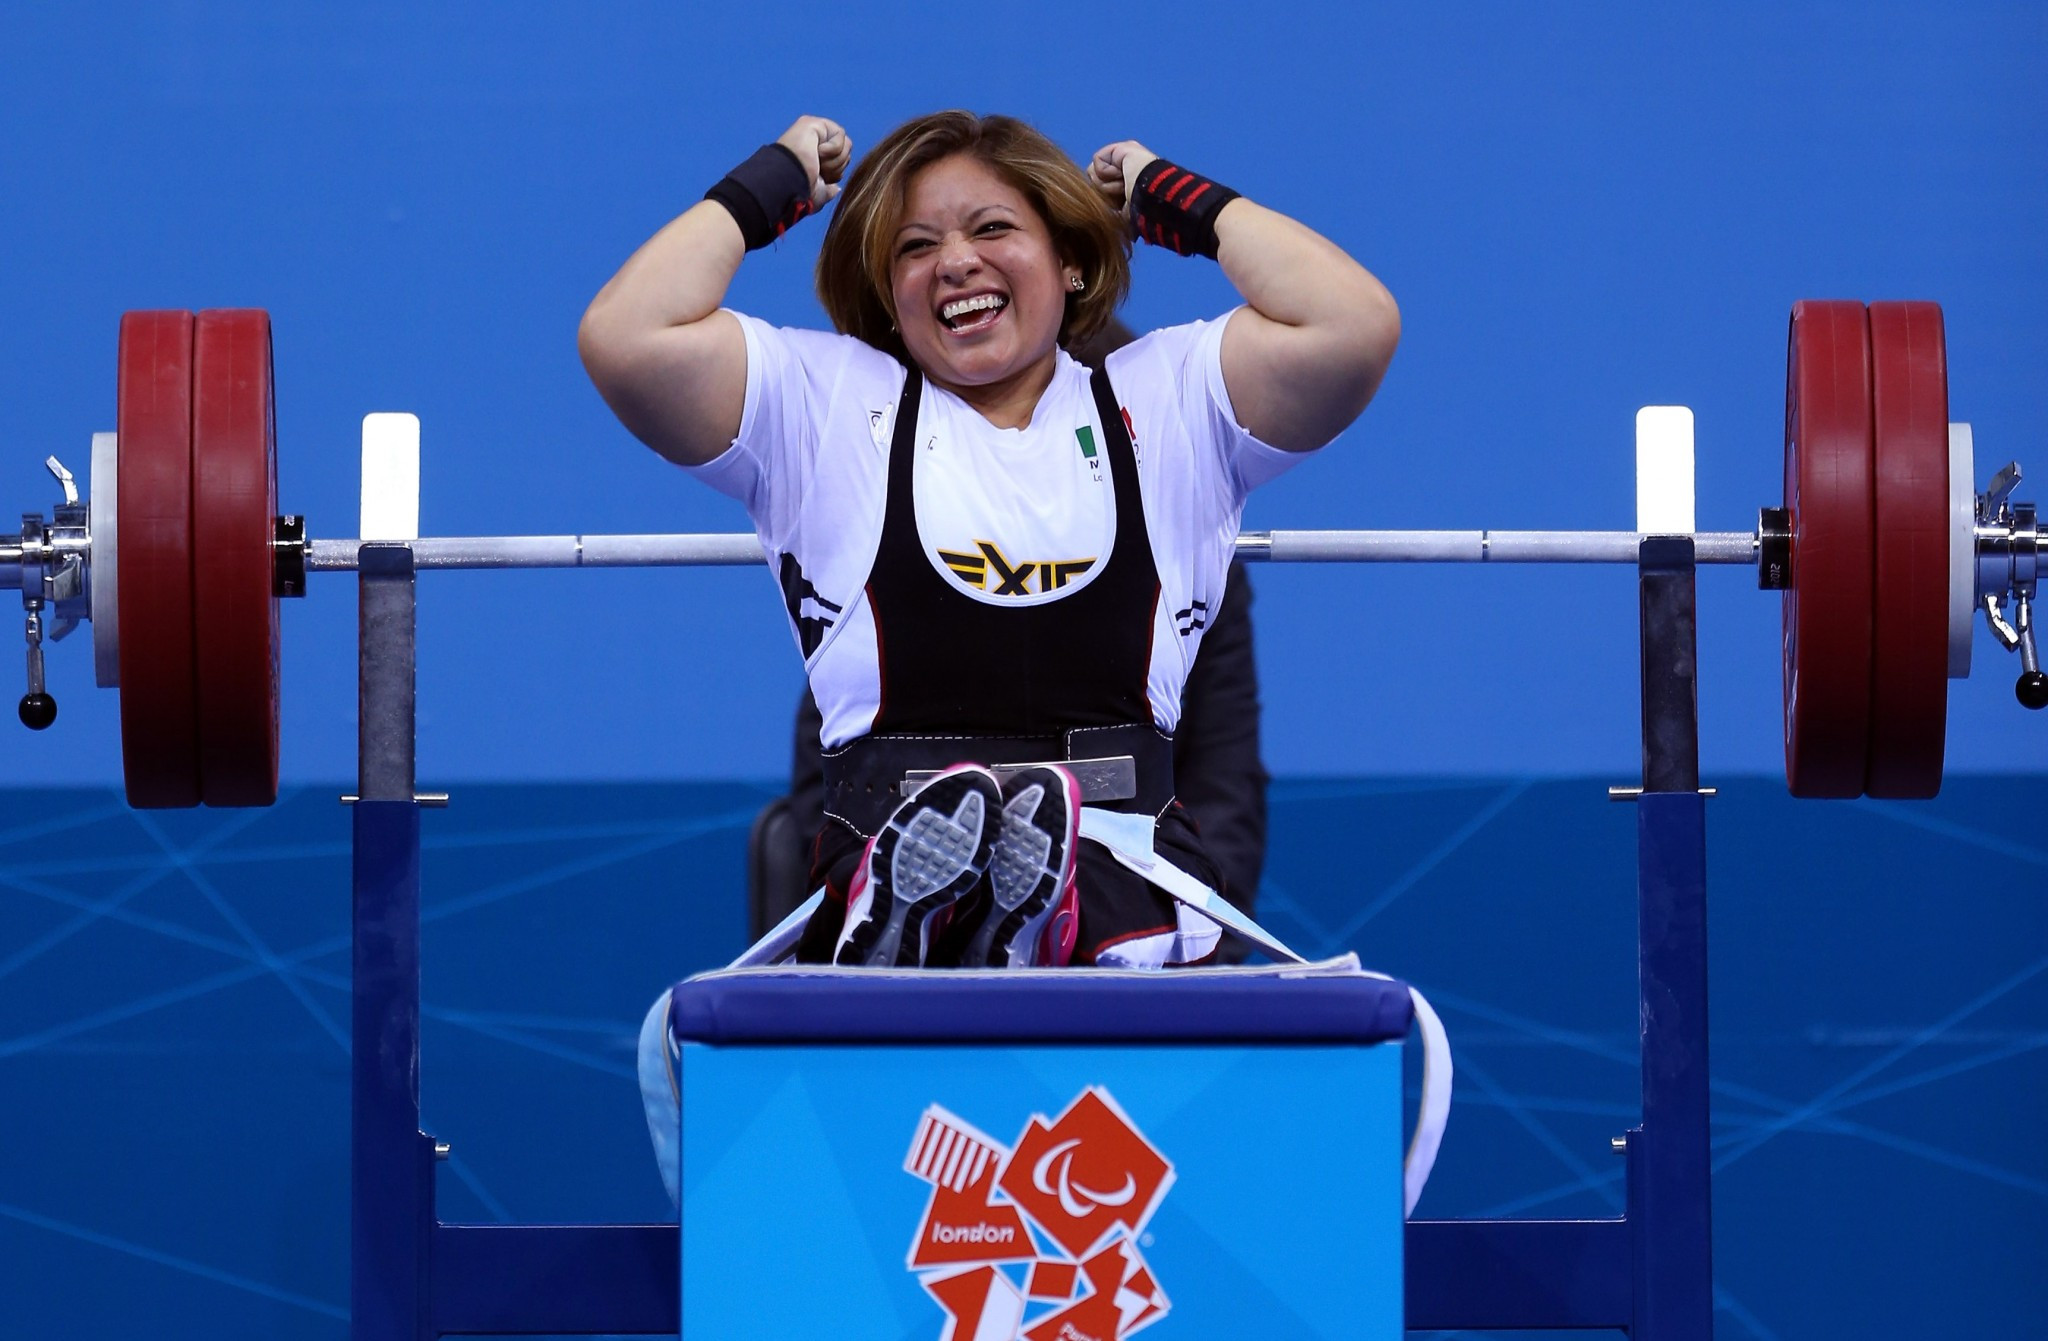 Athletes gear up for IPC Powerlifting Americas Open Championships in Mexico City